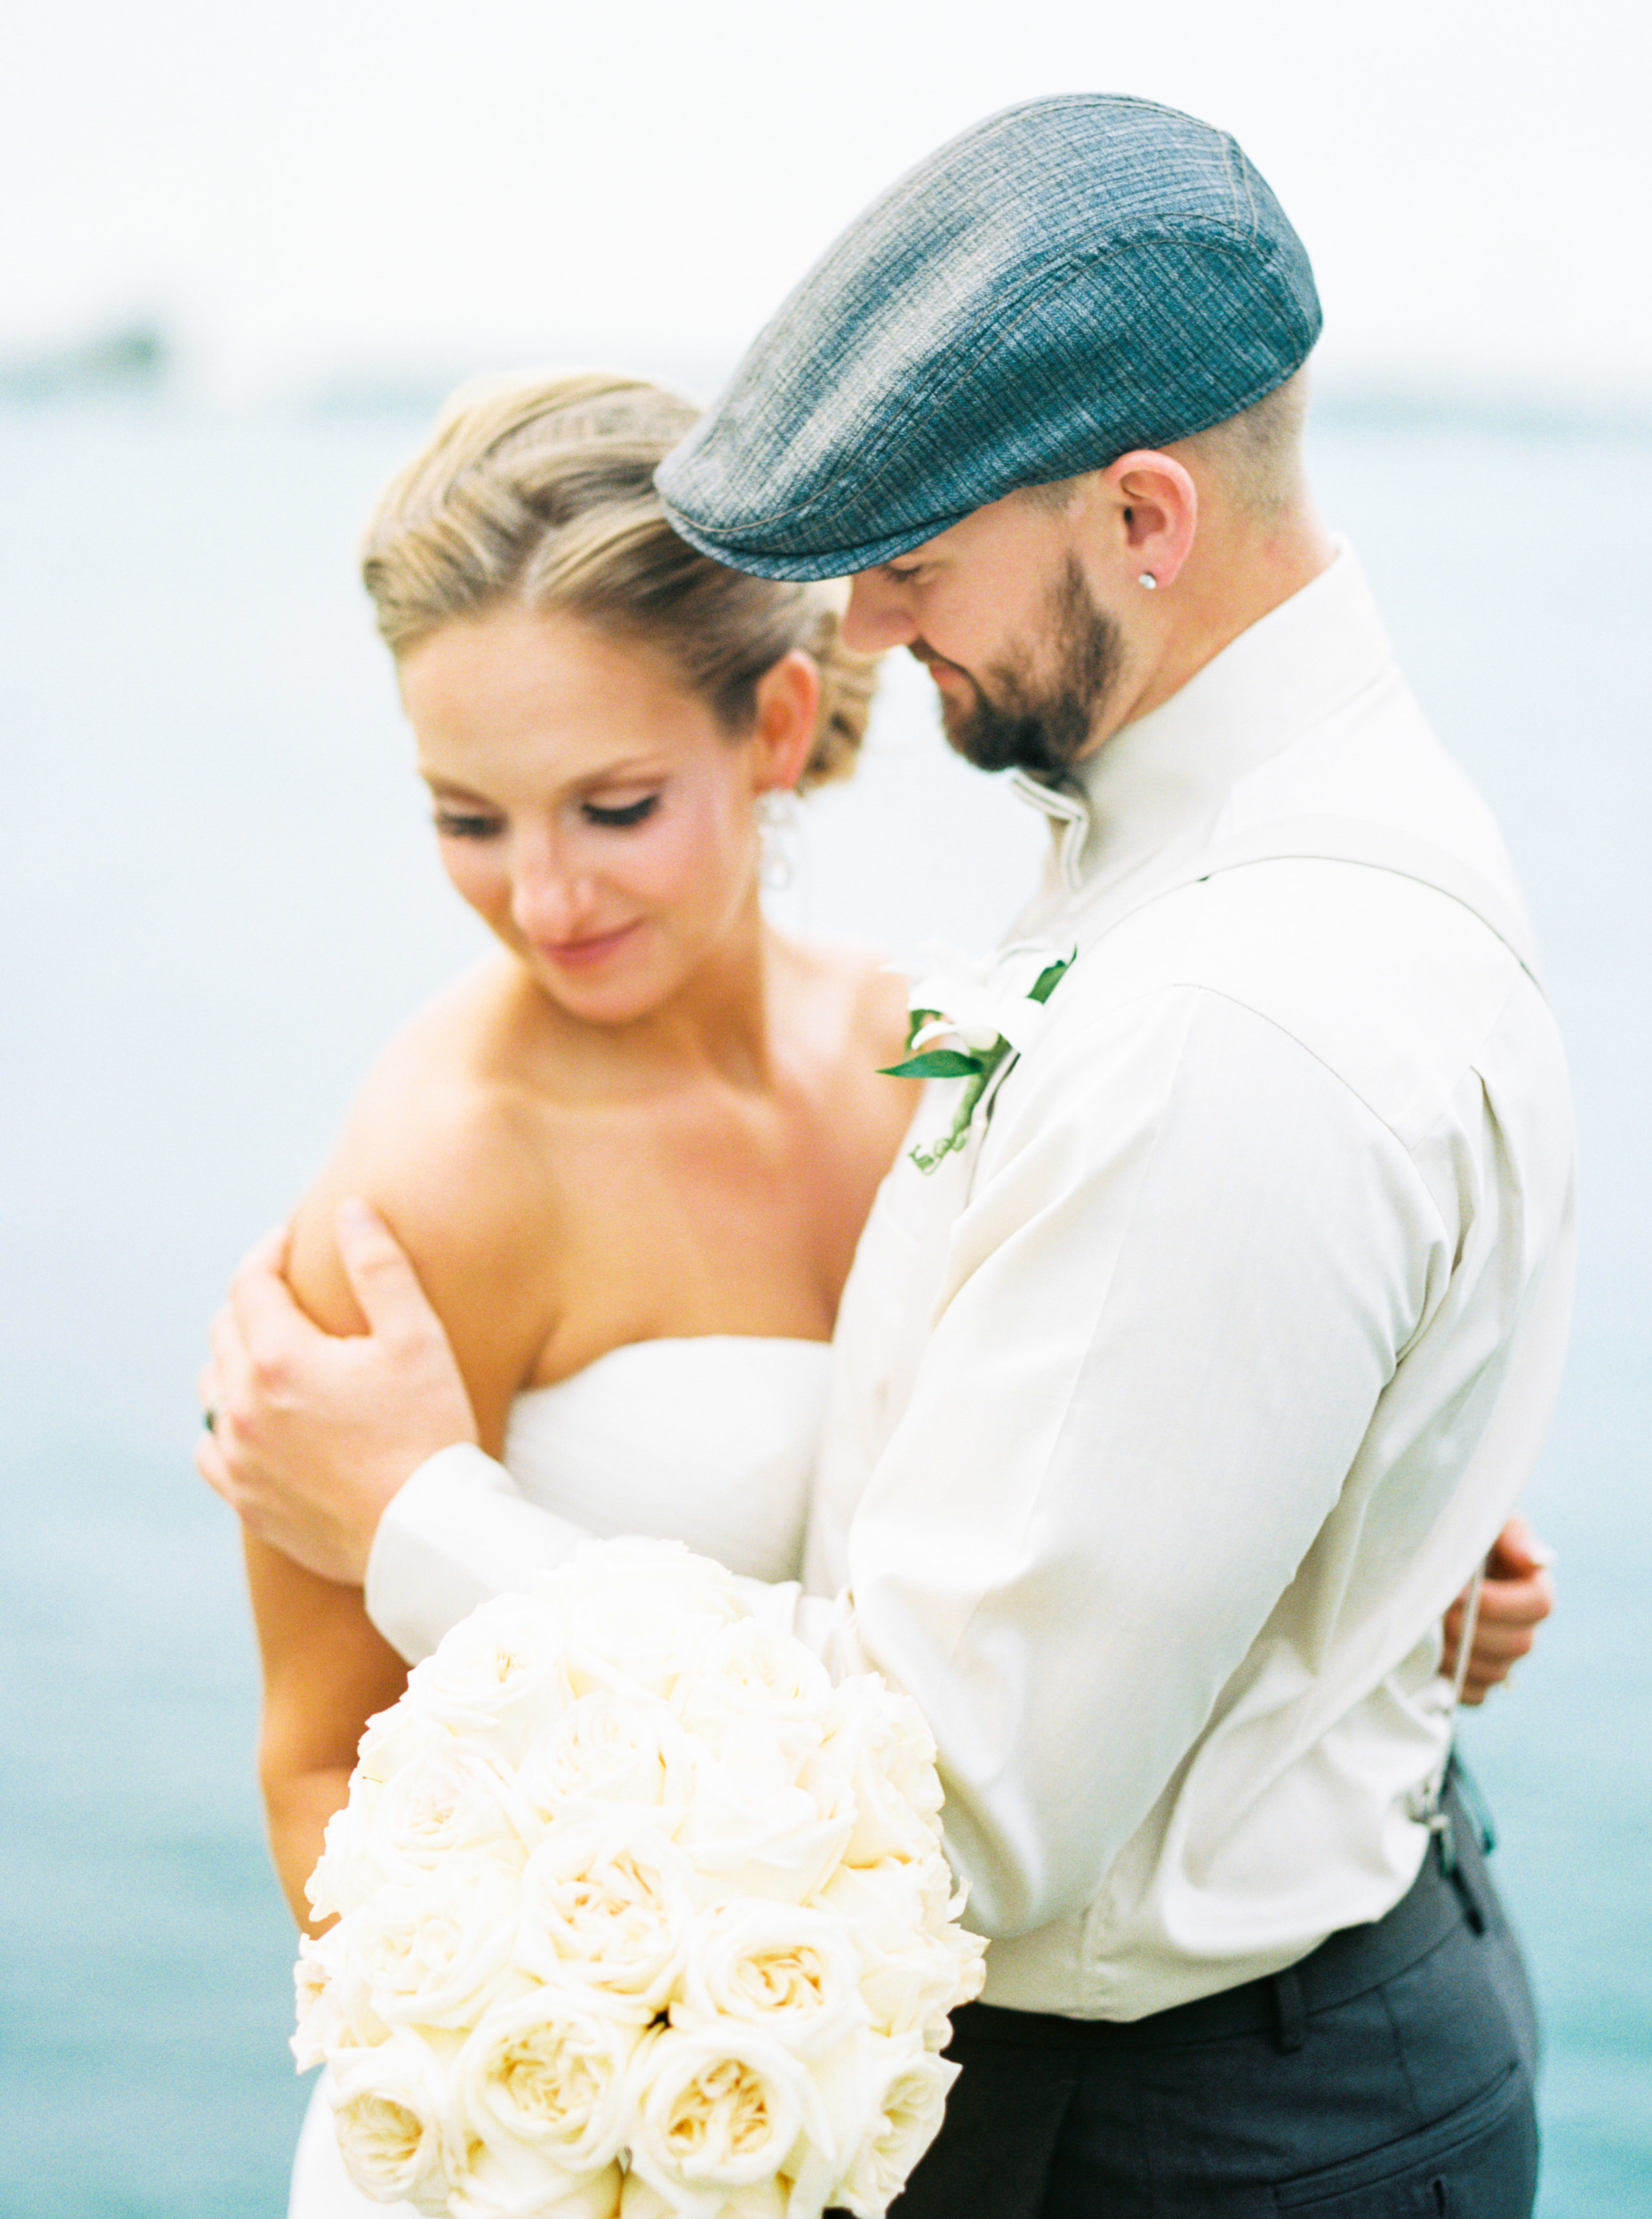 Key West Florida Wedding Film Photographer Photovision Chicago Wedding Photographer 29.jpg